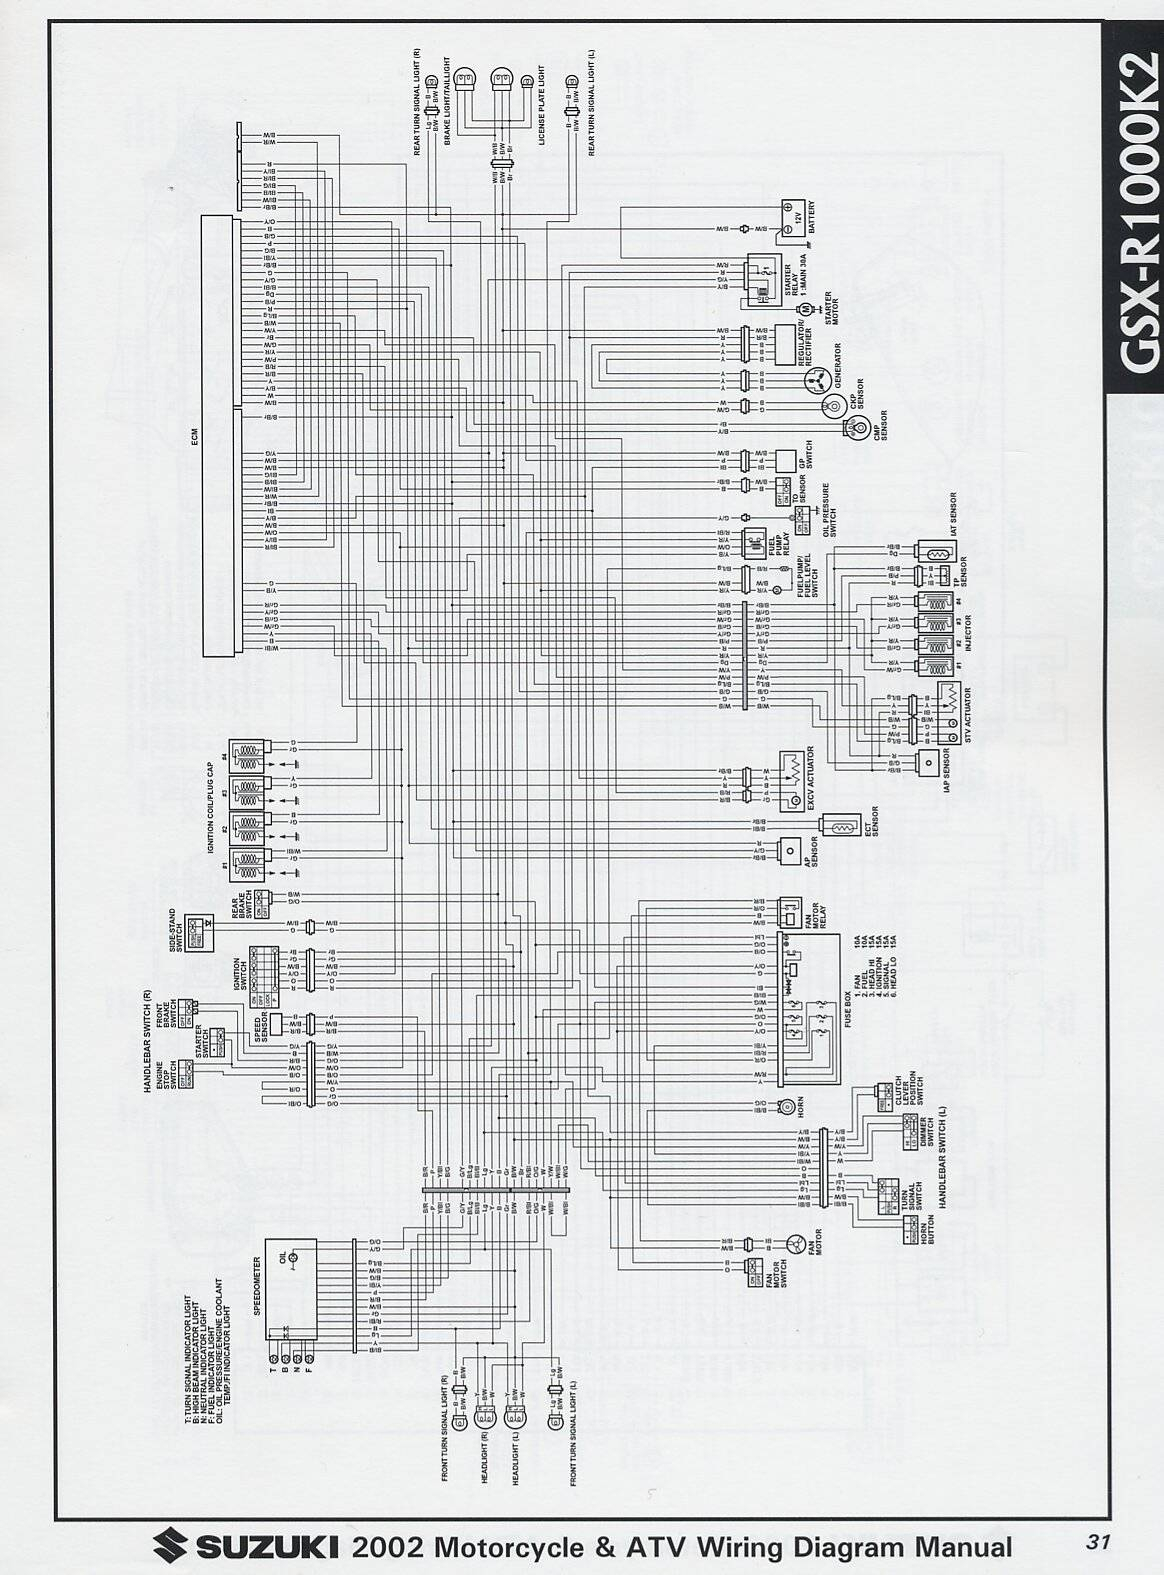 Virago 1000 Wiring Diagram And Schematics 1985 2002 Suzuki Gsx R Diagrams Xv750 Yamaha